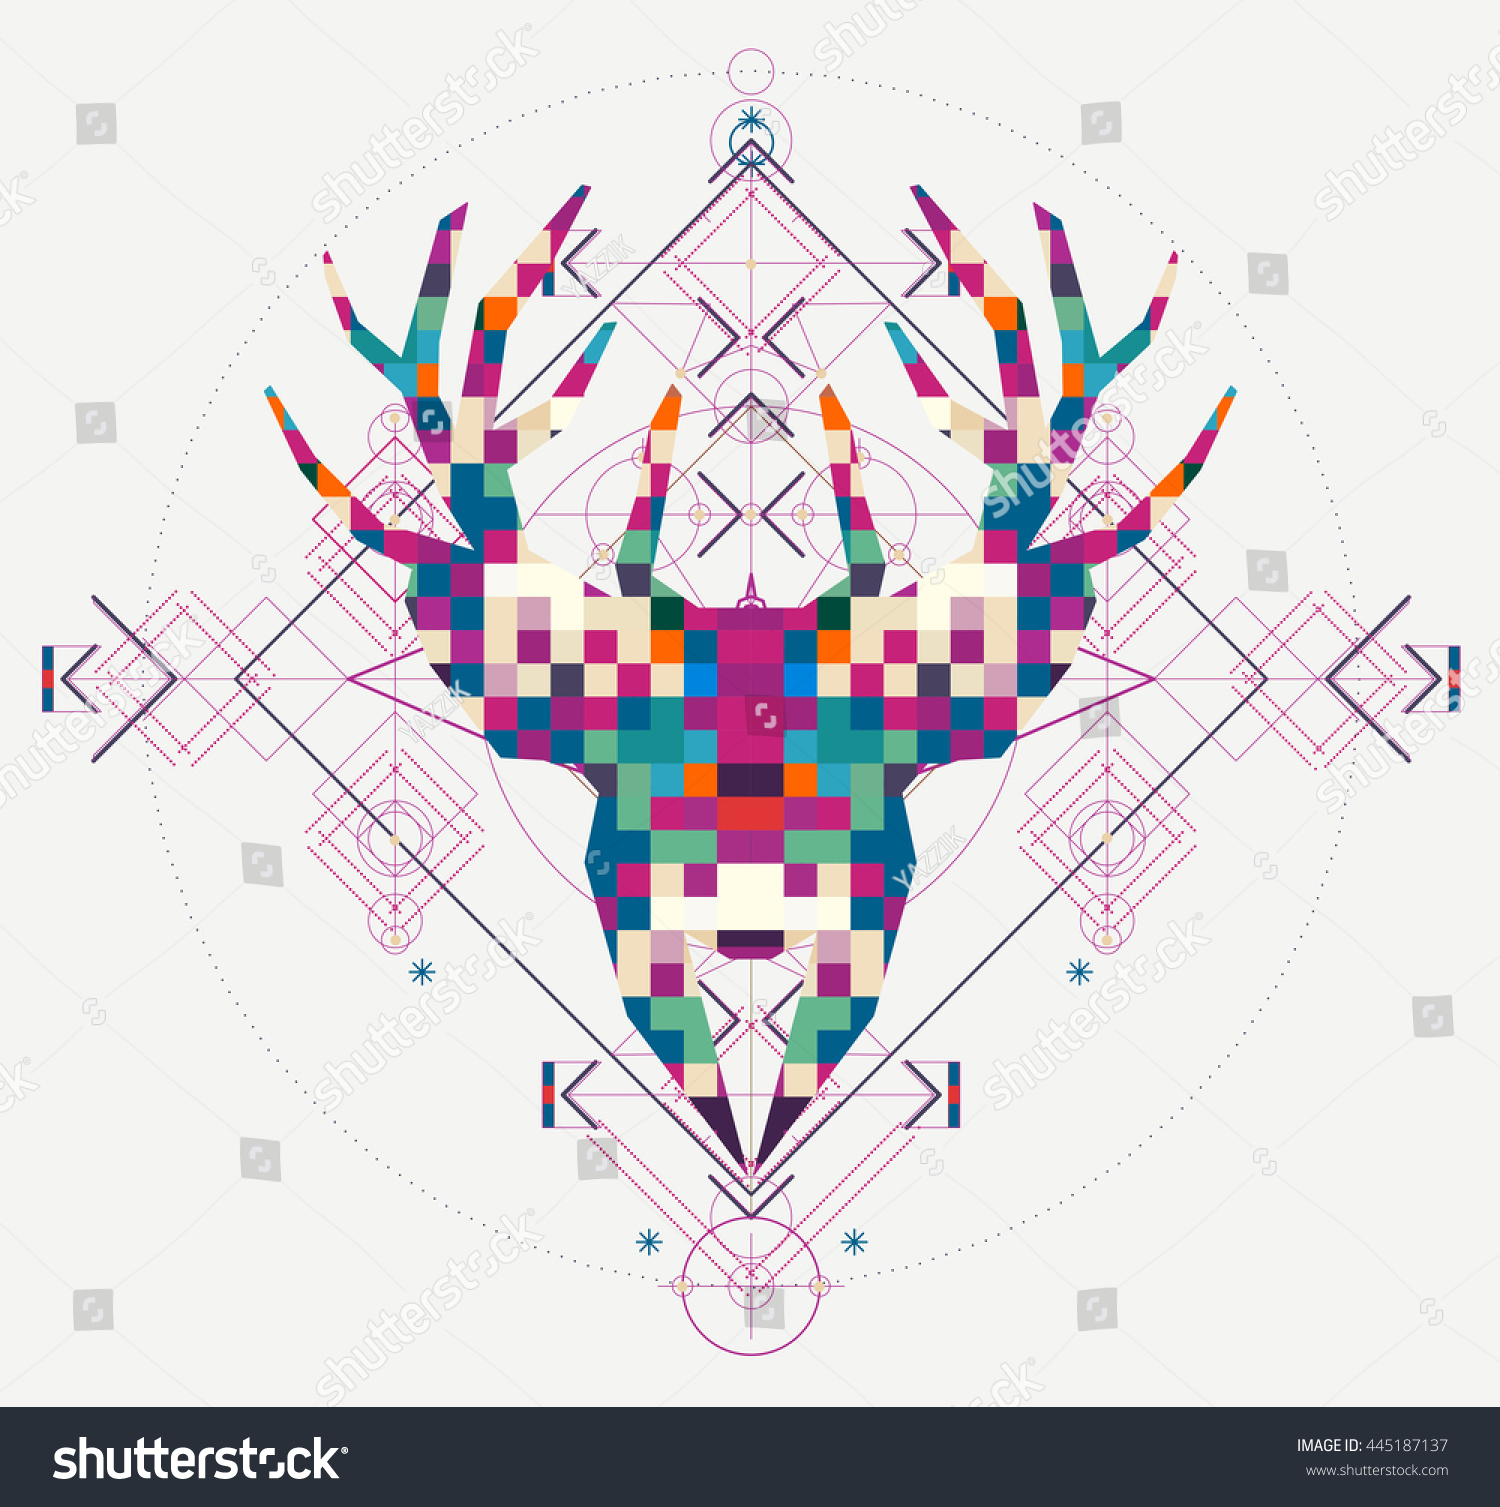 Tiger head triangular icon geometric trendy stock vector image - Animal Head Deer Triangular Pixel Icon Geometric Trendy Line Design Indian Pattern Vector Illustration